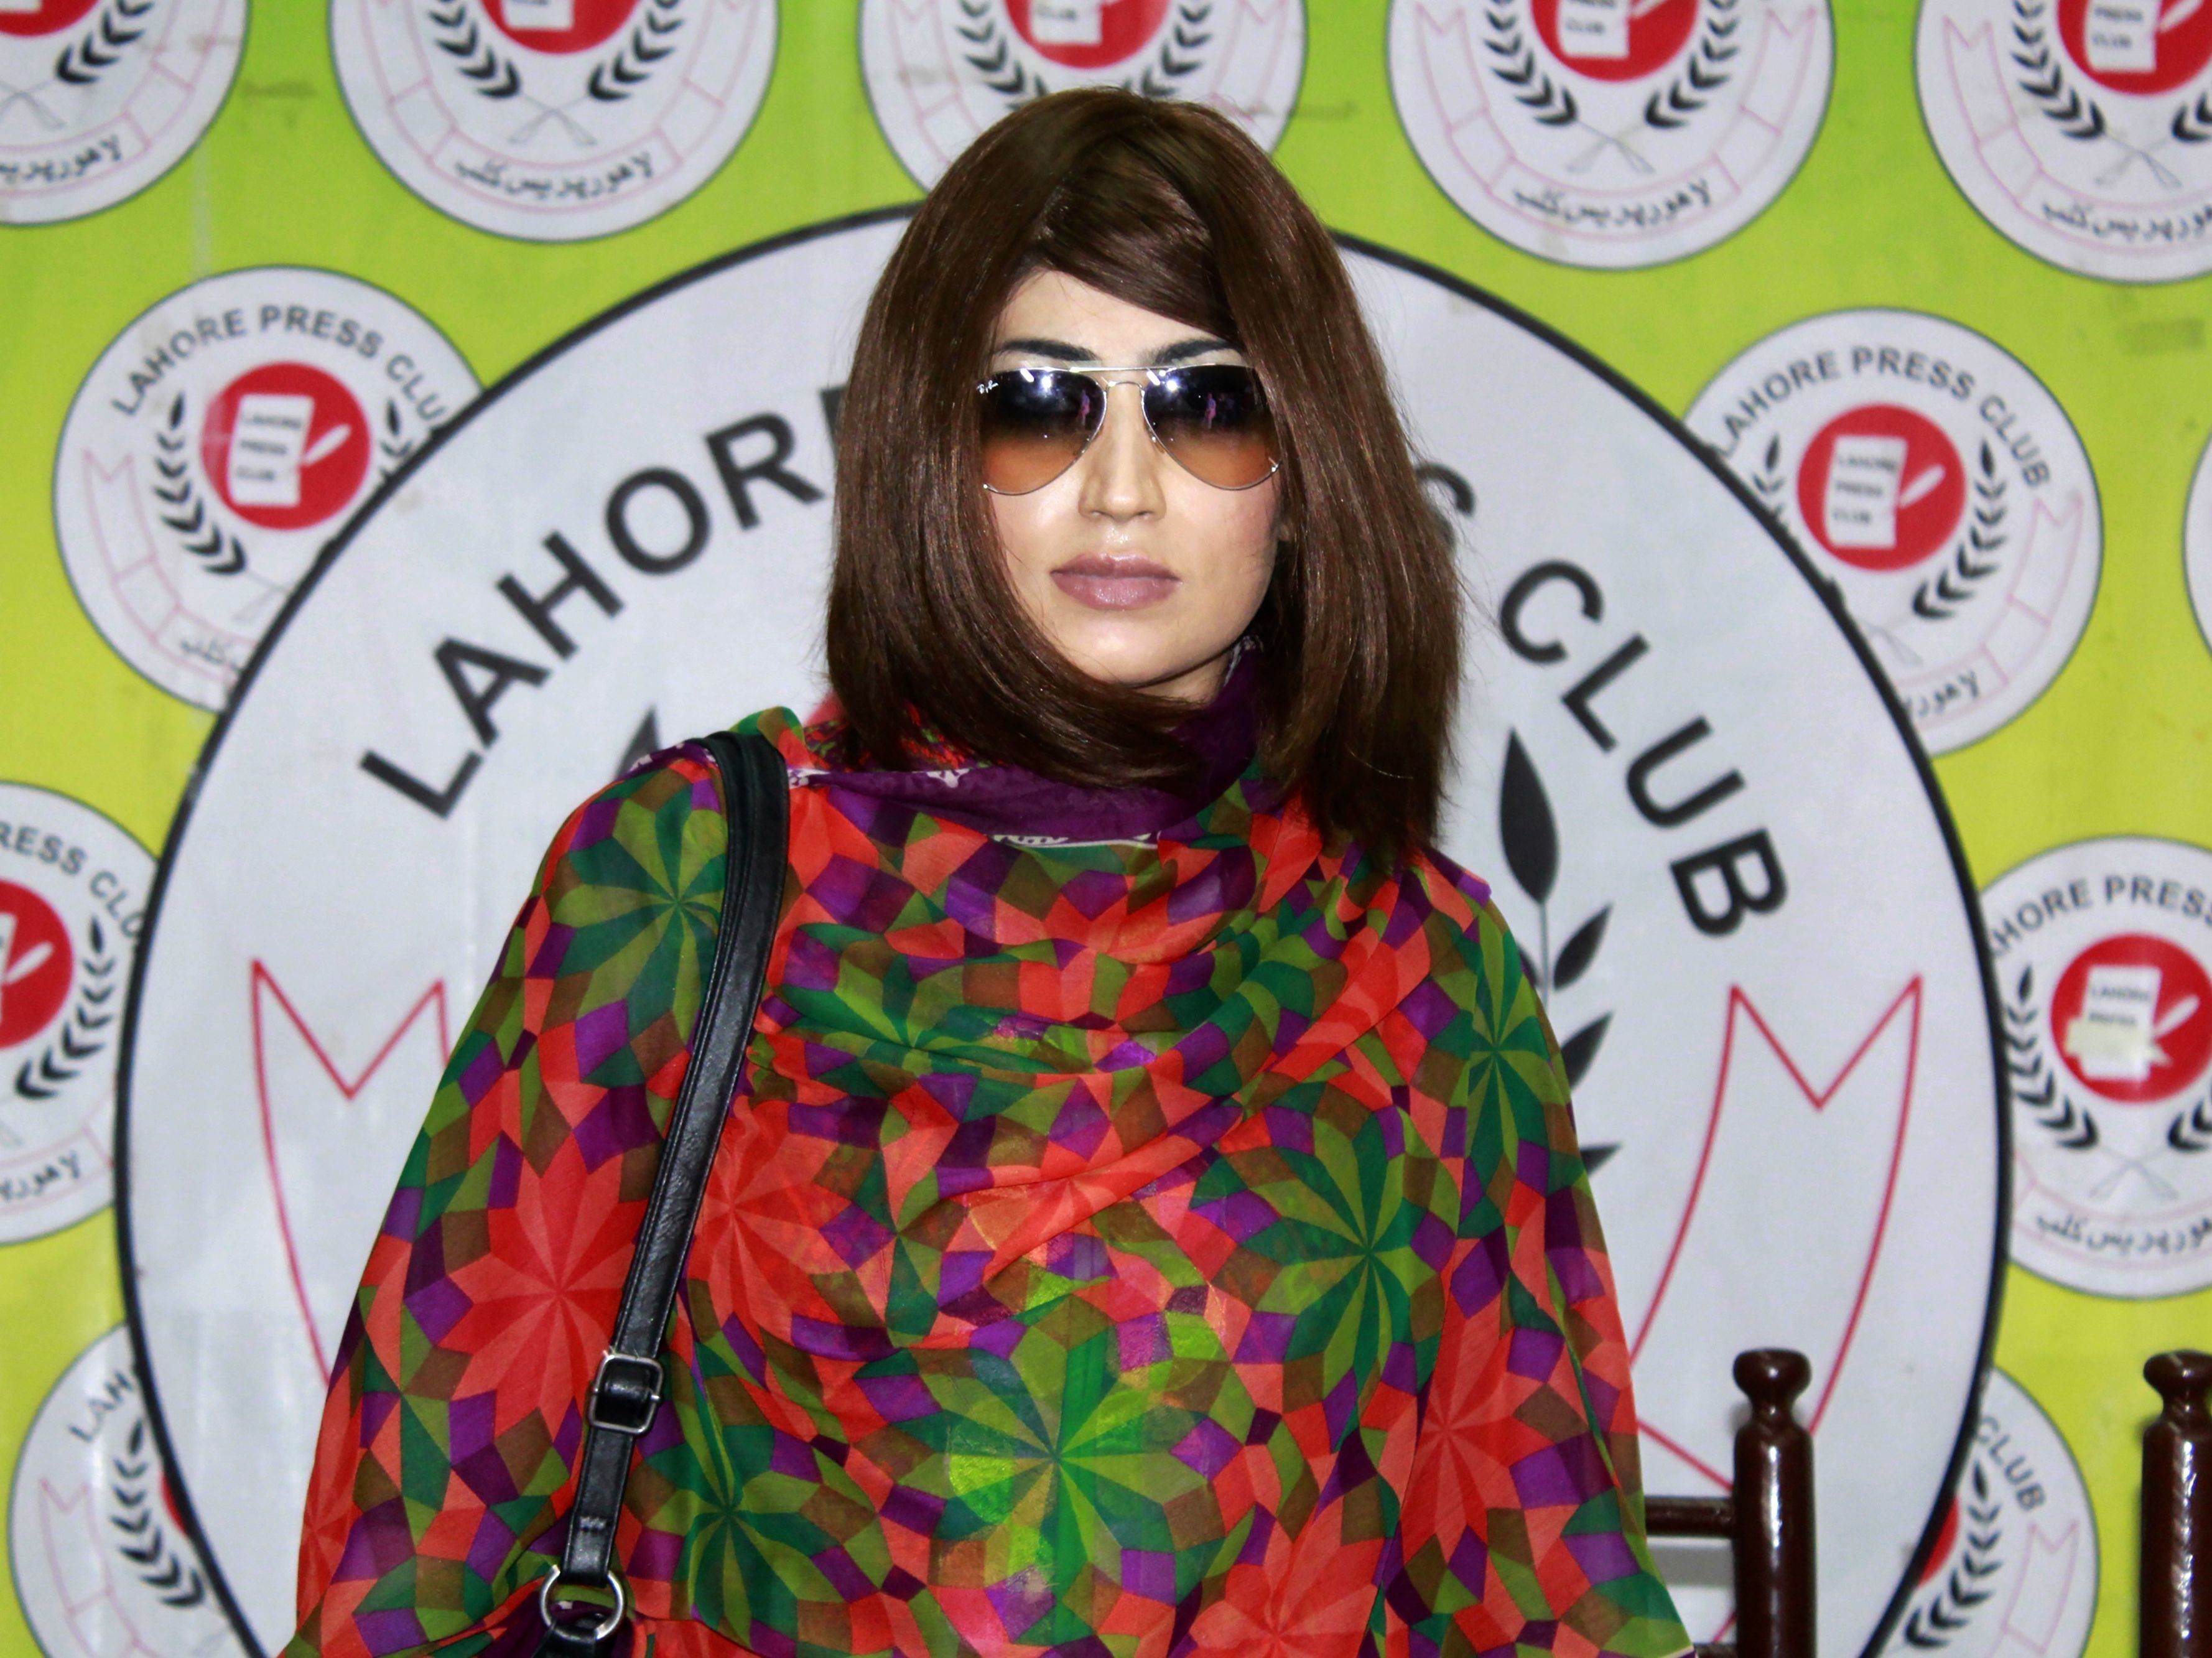 Qandeel Baloch is believed to have died in an apparent 'honour